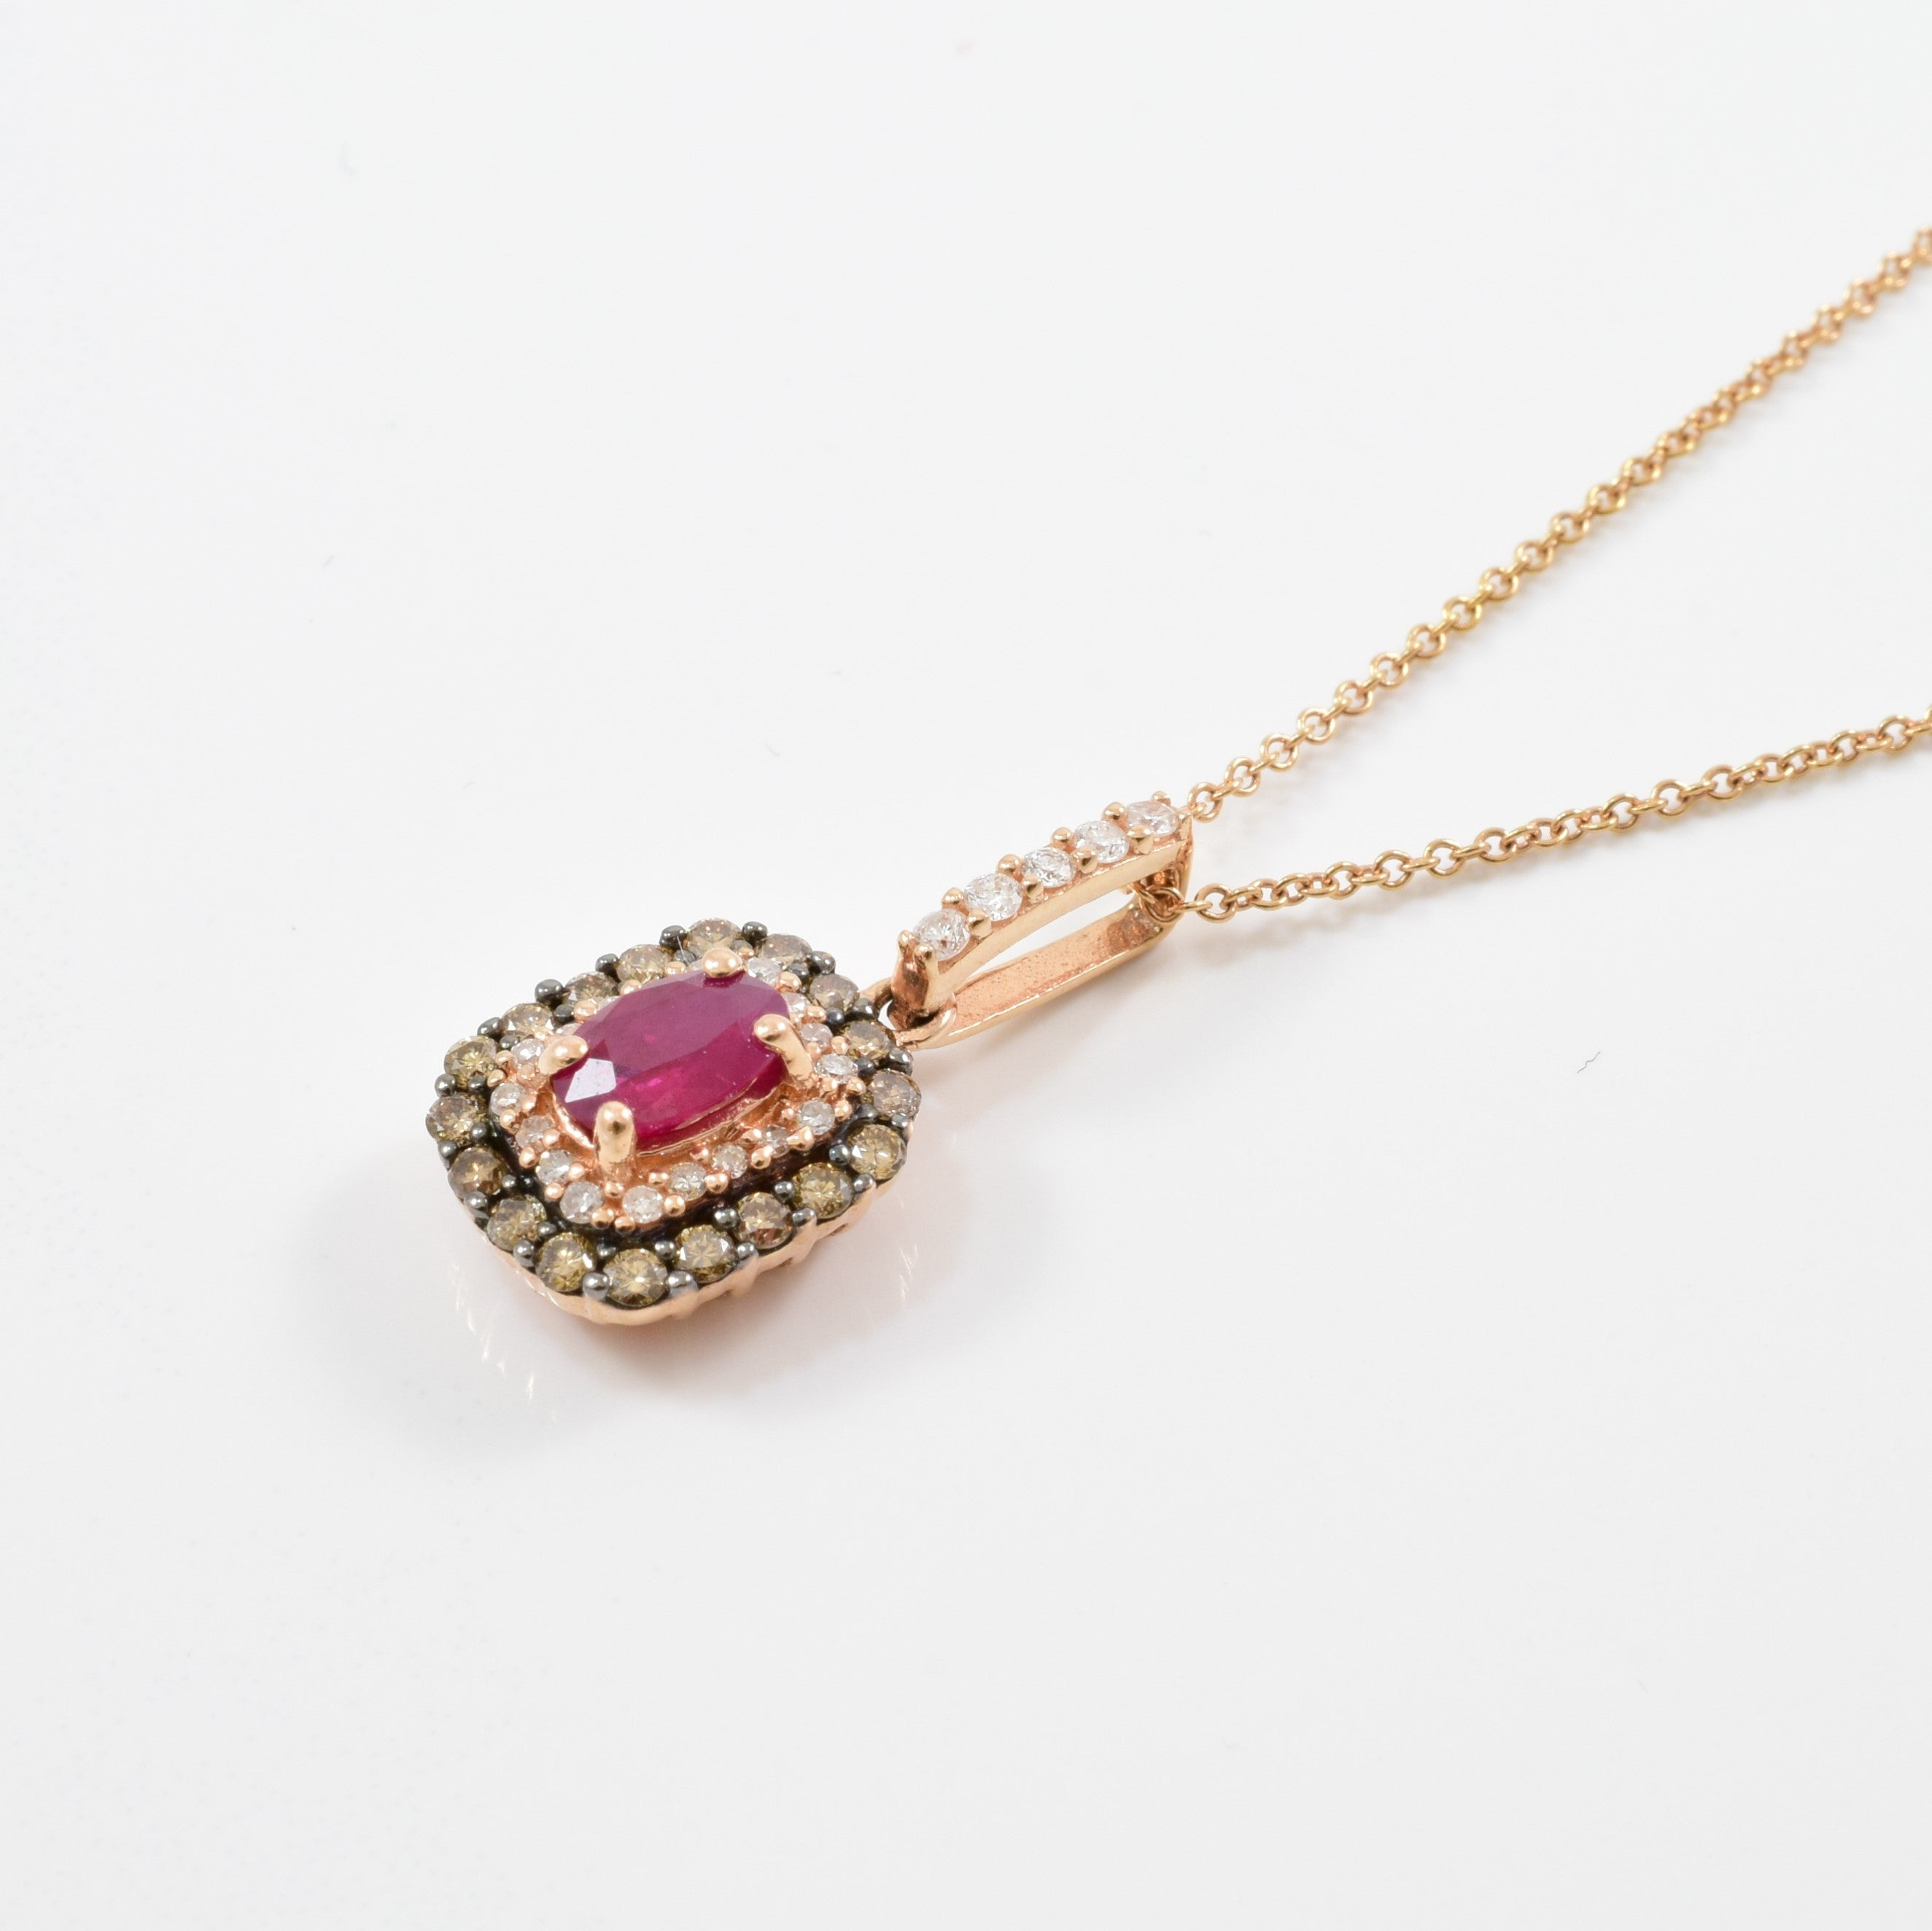 'Effy' Ruby & Champagne Diamond Necklace | 0.25ctw, 0.45ct | 18"